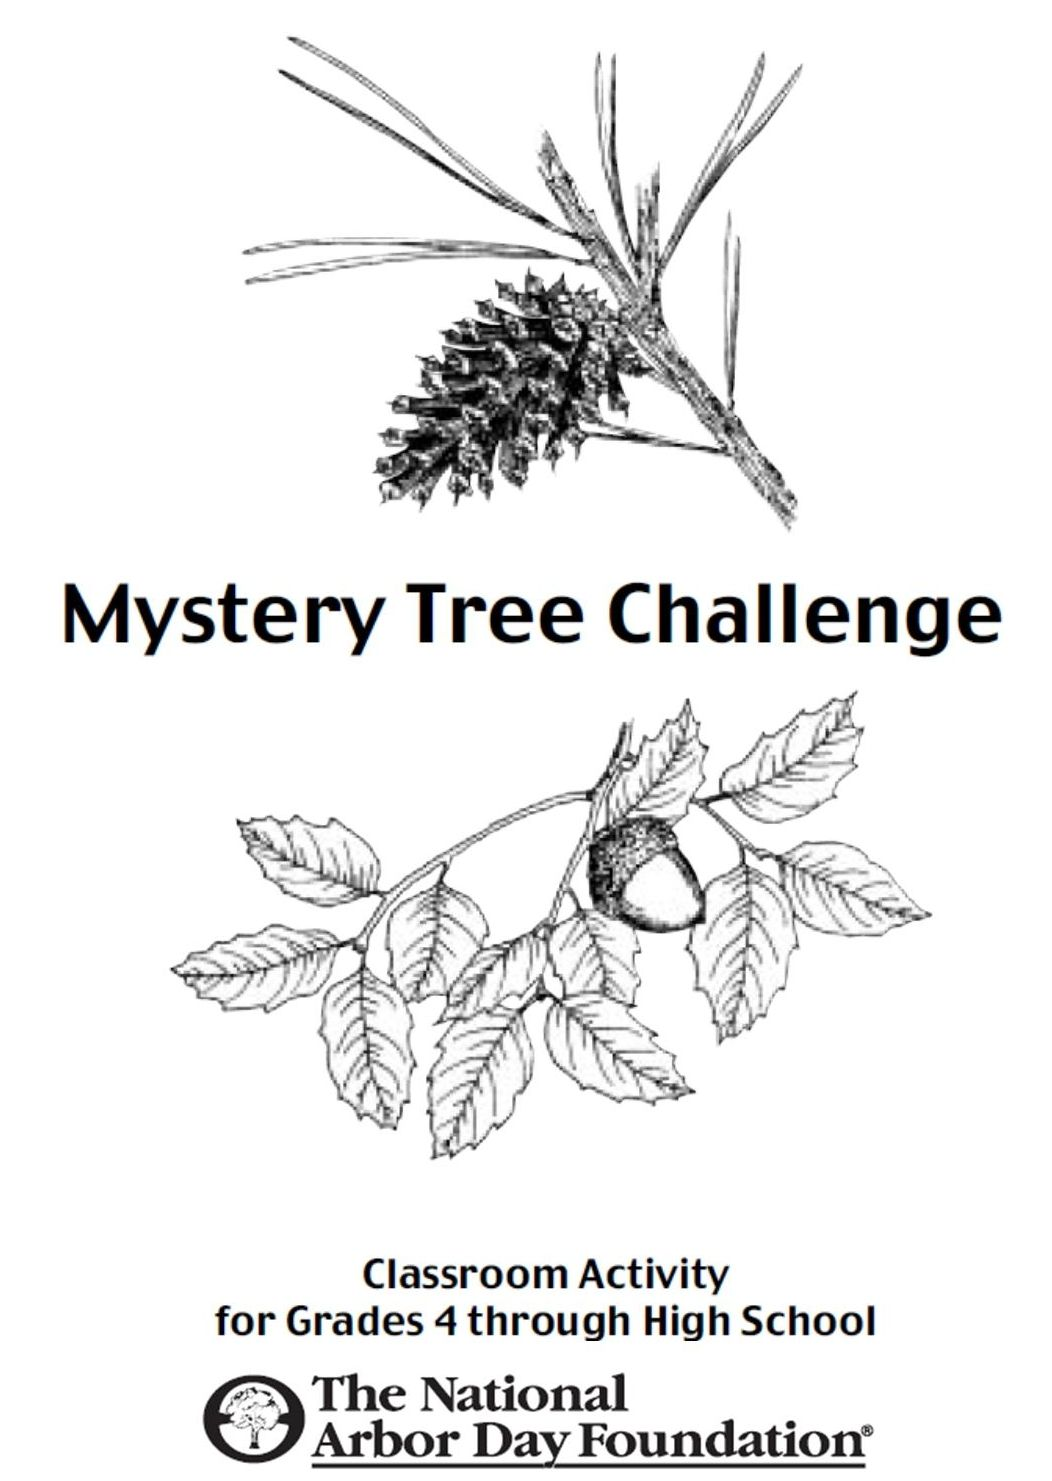 This Mystery Tree Challenge Is A From The Arbor Day